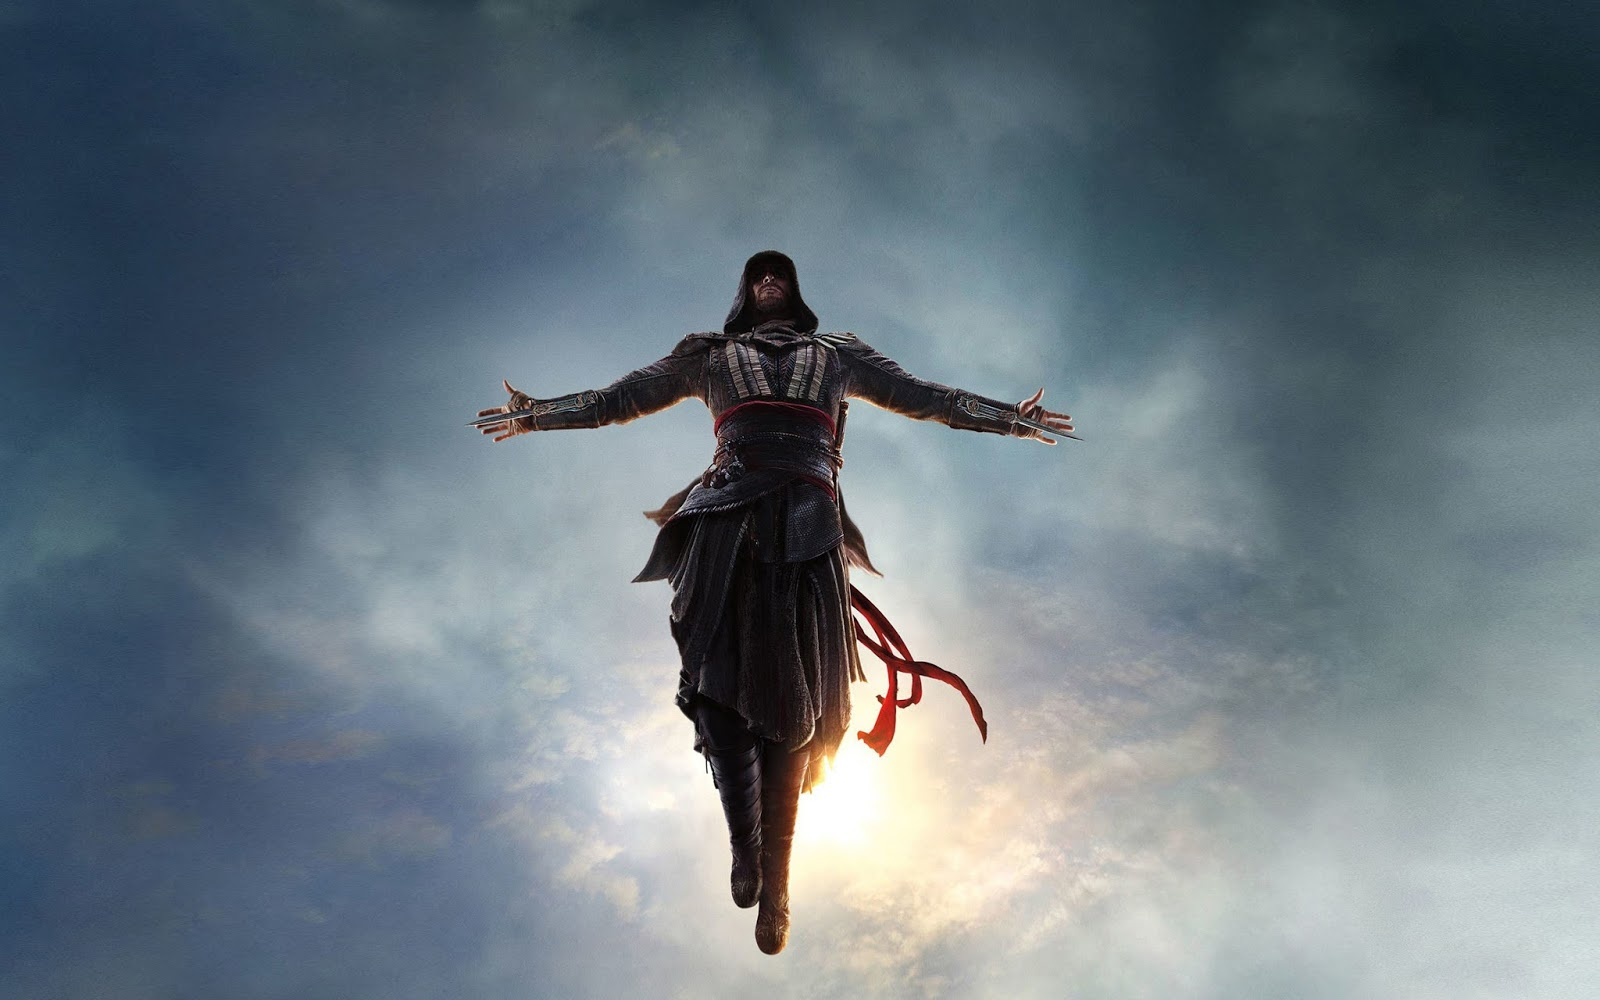 With a Redesigned Animus and Iconic Leap of Faith Jumps ...